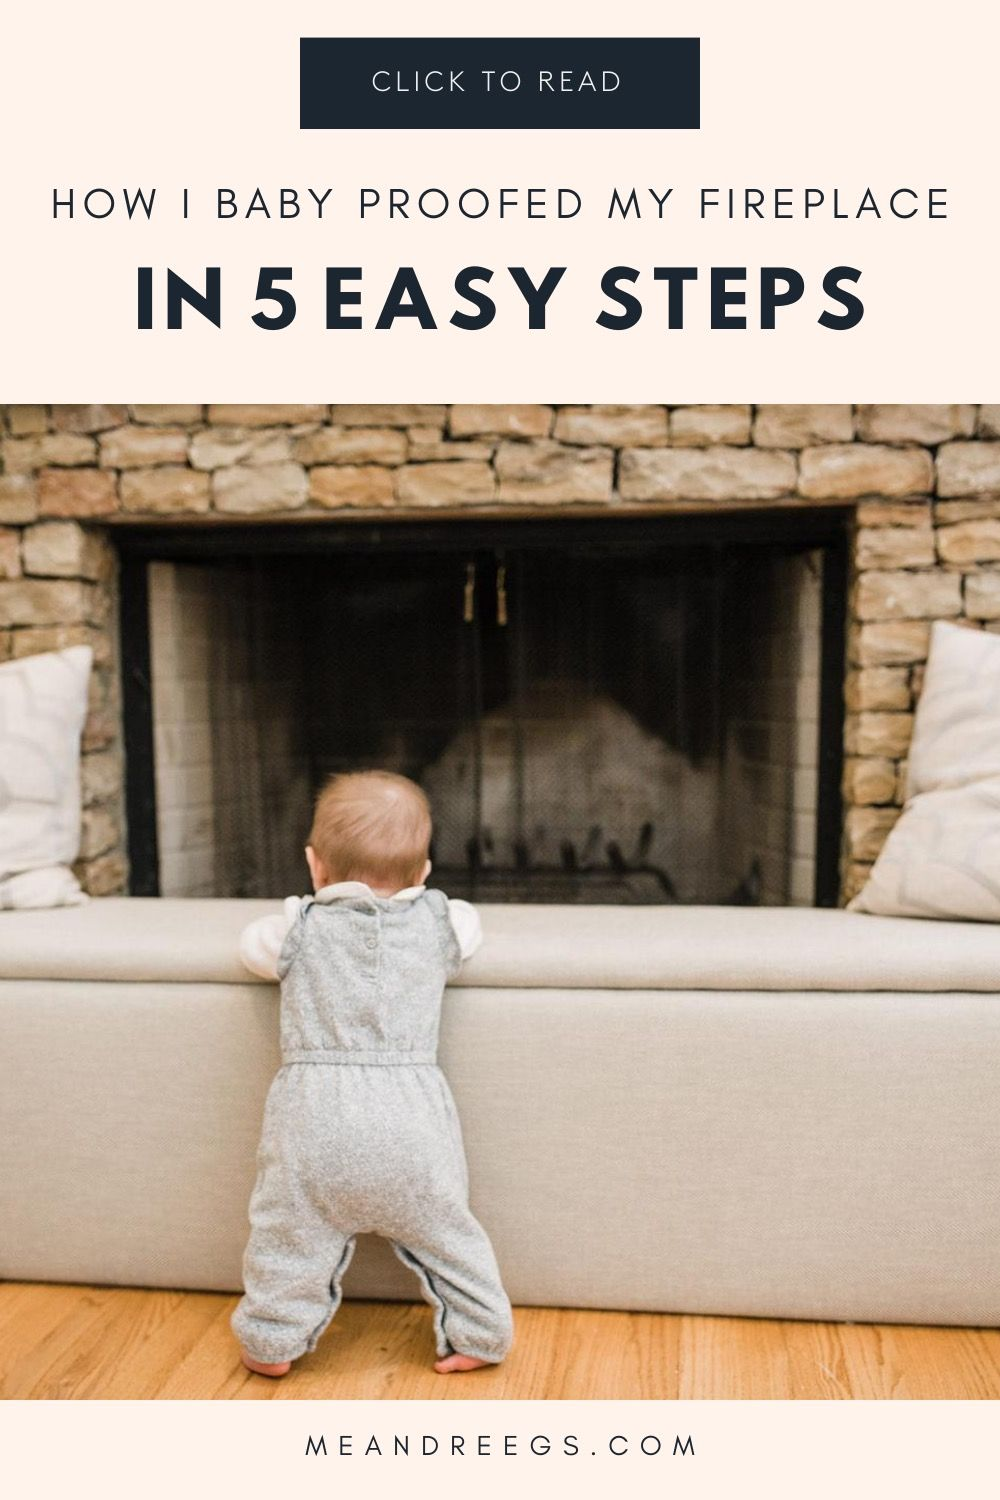 How to make a Fireplace Hearth Cover DIY Stylish and